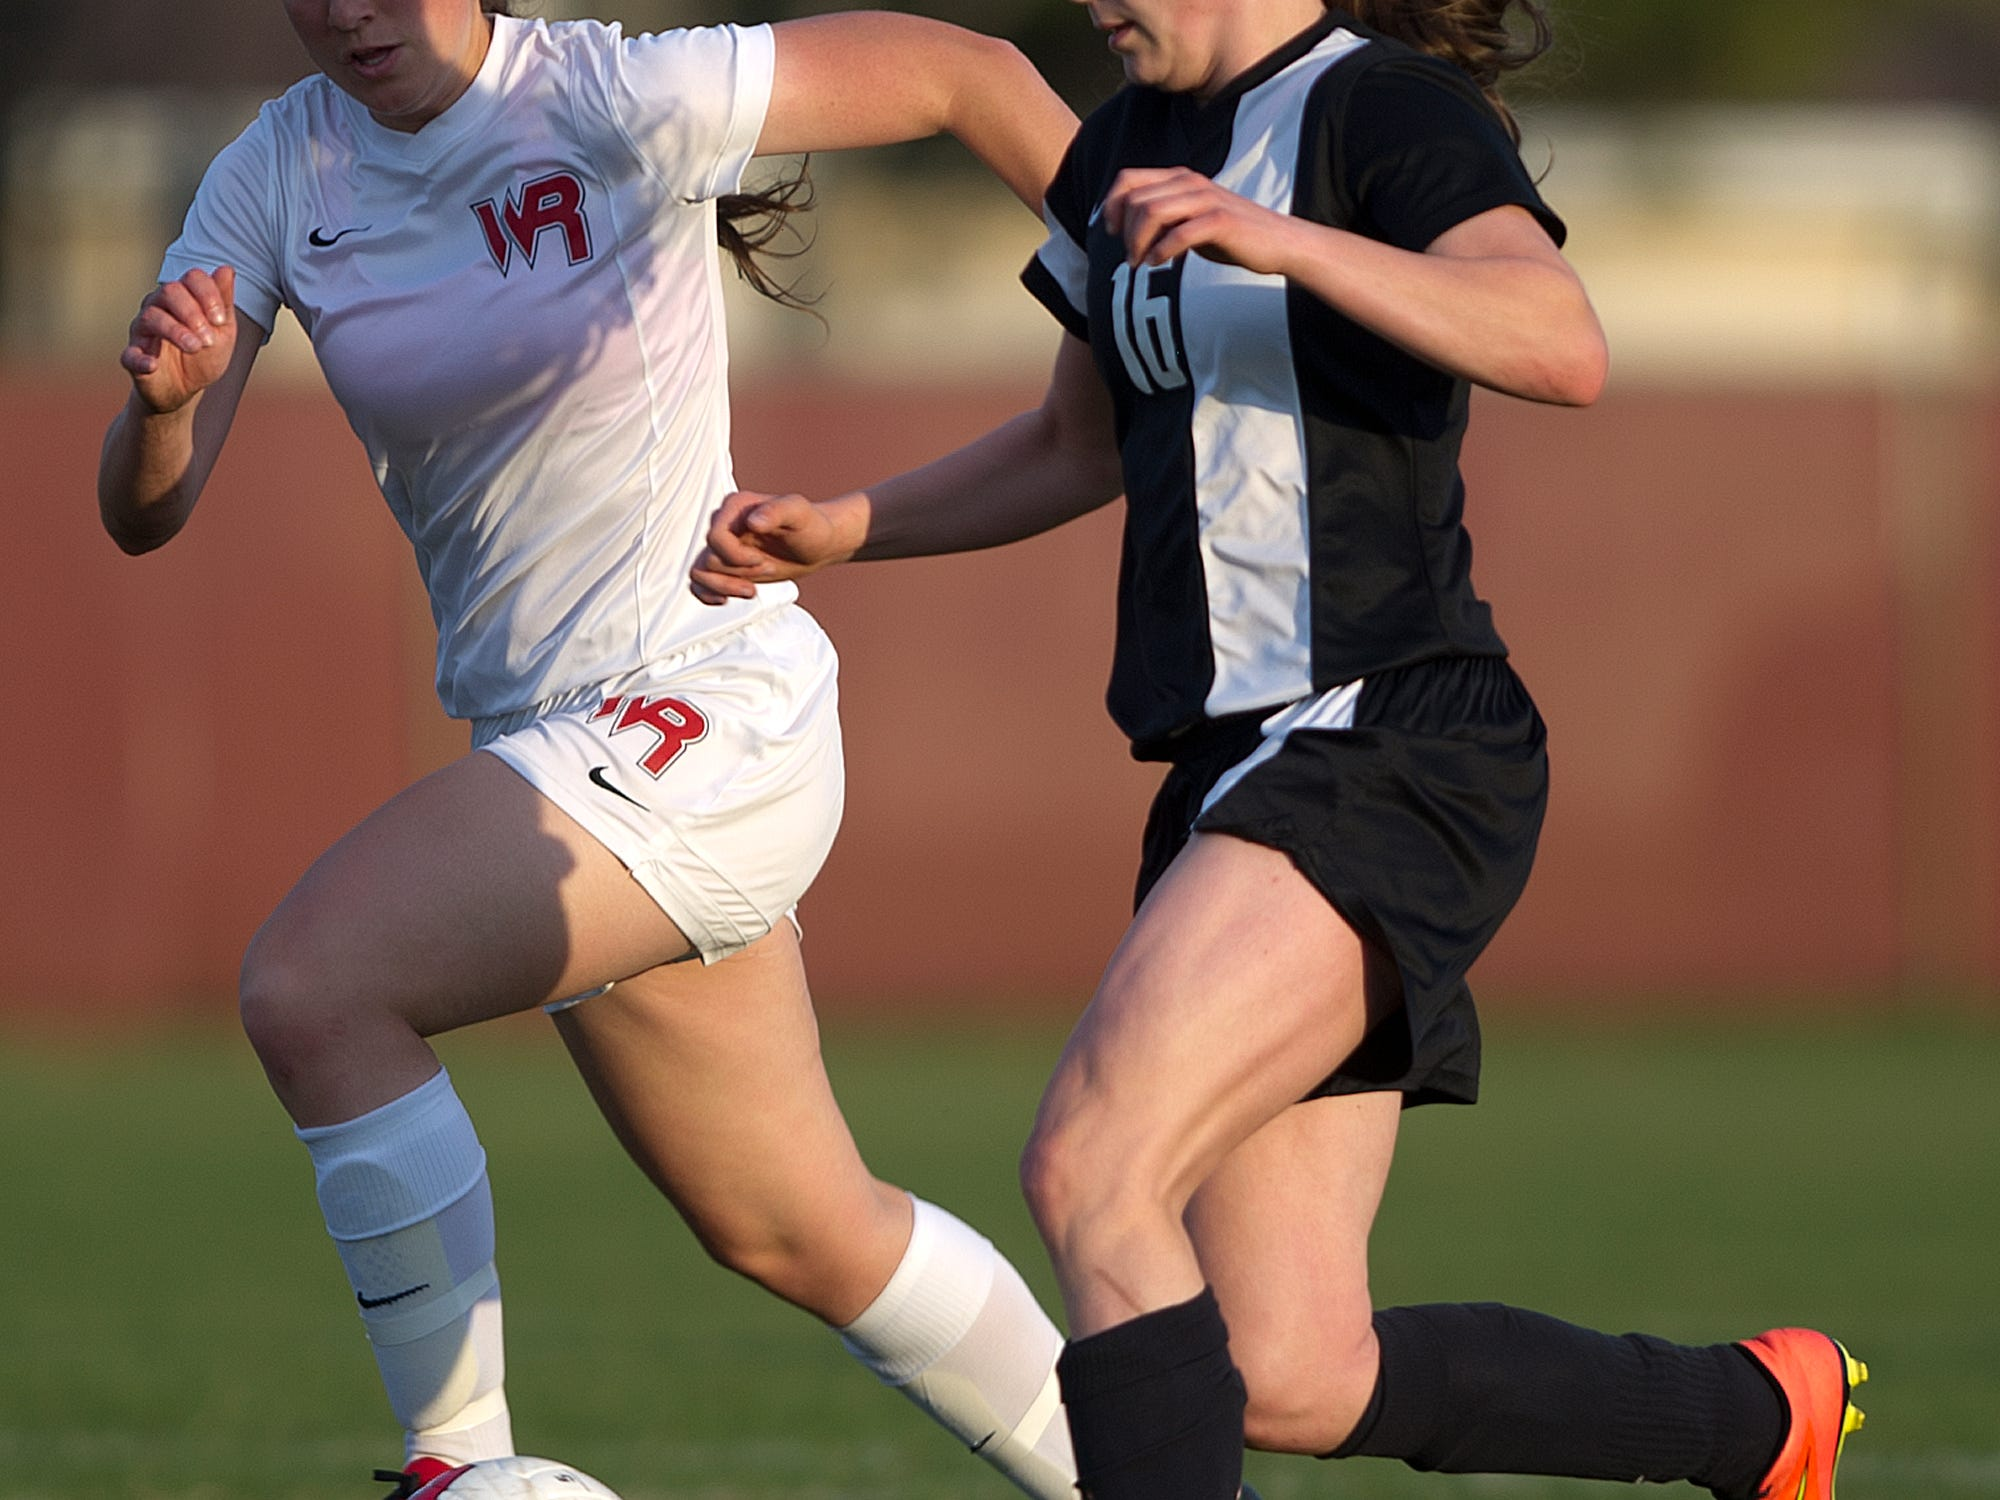 Wisconsin Rapids' Katie Kiiskila, left, challenges Stevens Point Area Senior High's Autum Shurbert-Hetzel, right, during a Wisconsin Valley Conference soccer game Tuesday at Washington Field in Wisconsin Rapids.